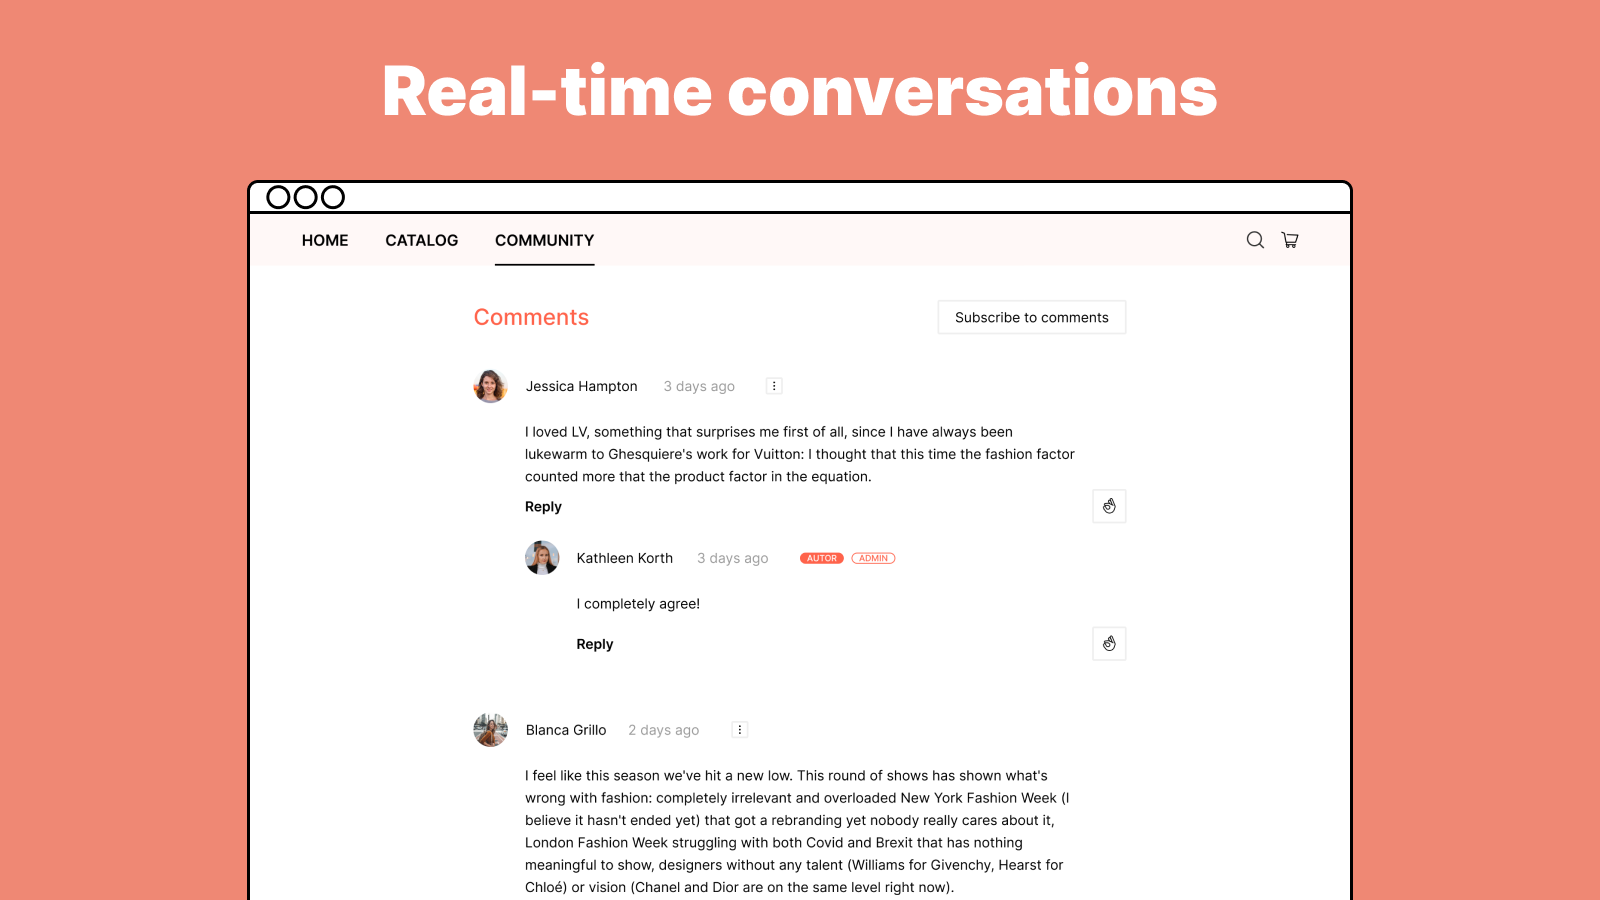 Real-time conversations